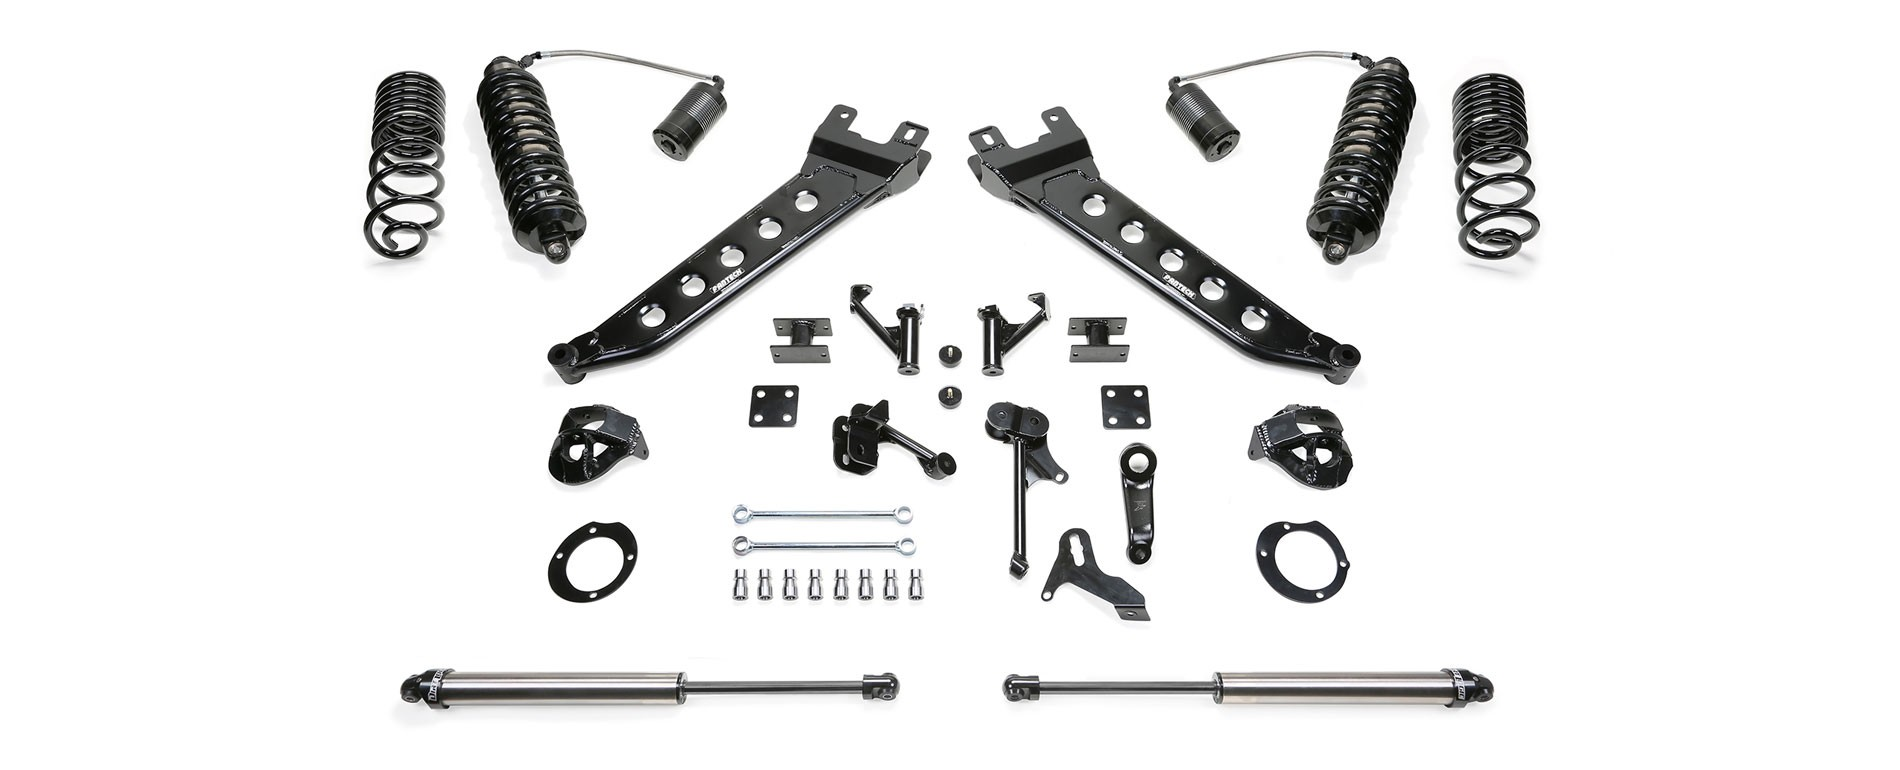 "FABTECH 5"" Radius Arm System w/ Dirt Logic 4.0 Resi Coilovers & Dirt Logic Shocks - 2014-17 Ram 2500 4WD"